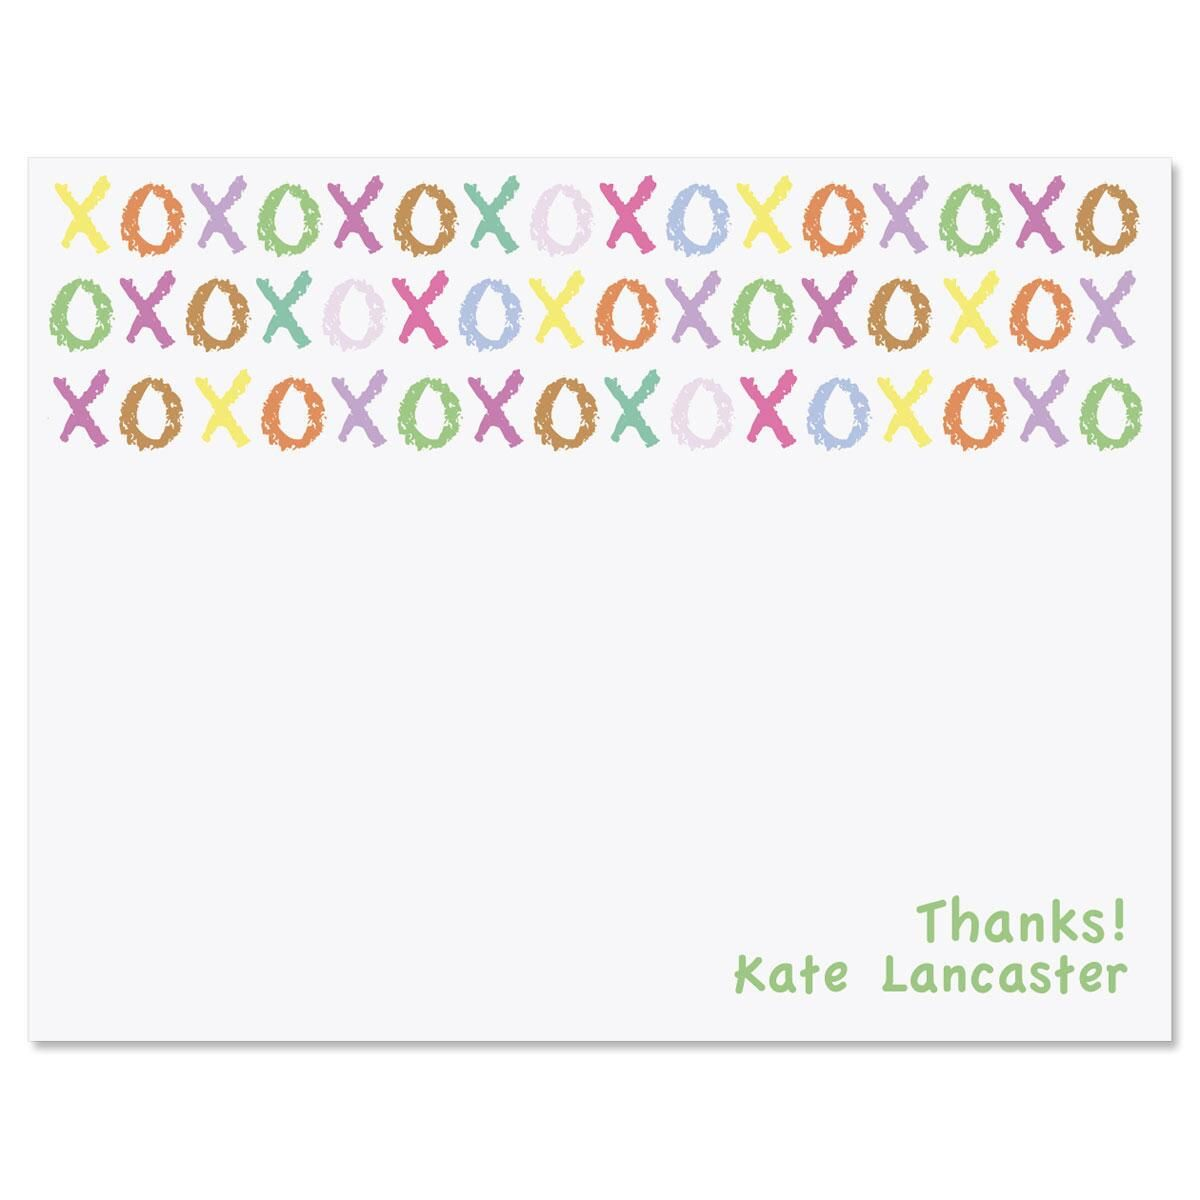 XOXOXO Personalized Thank You Cards